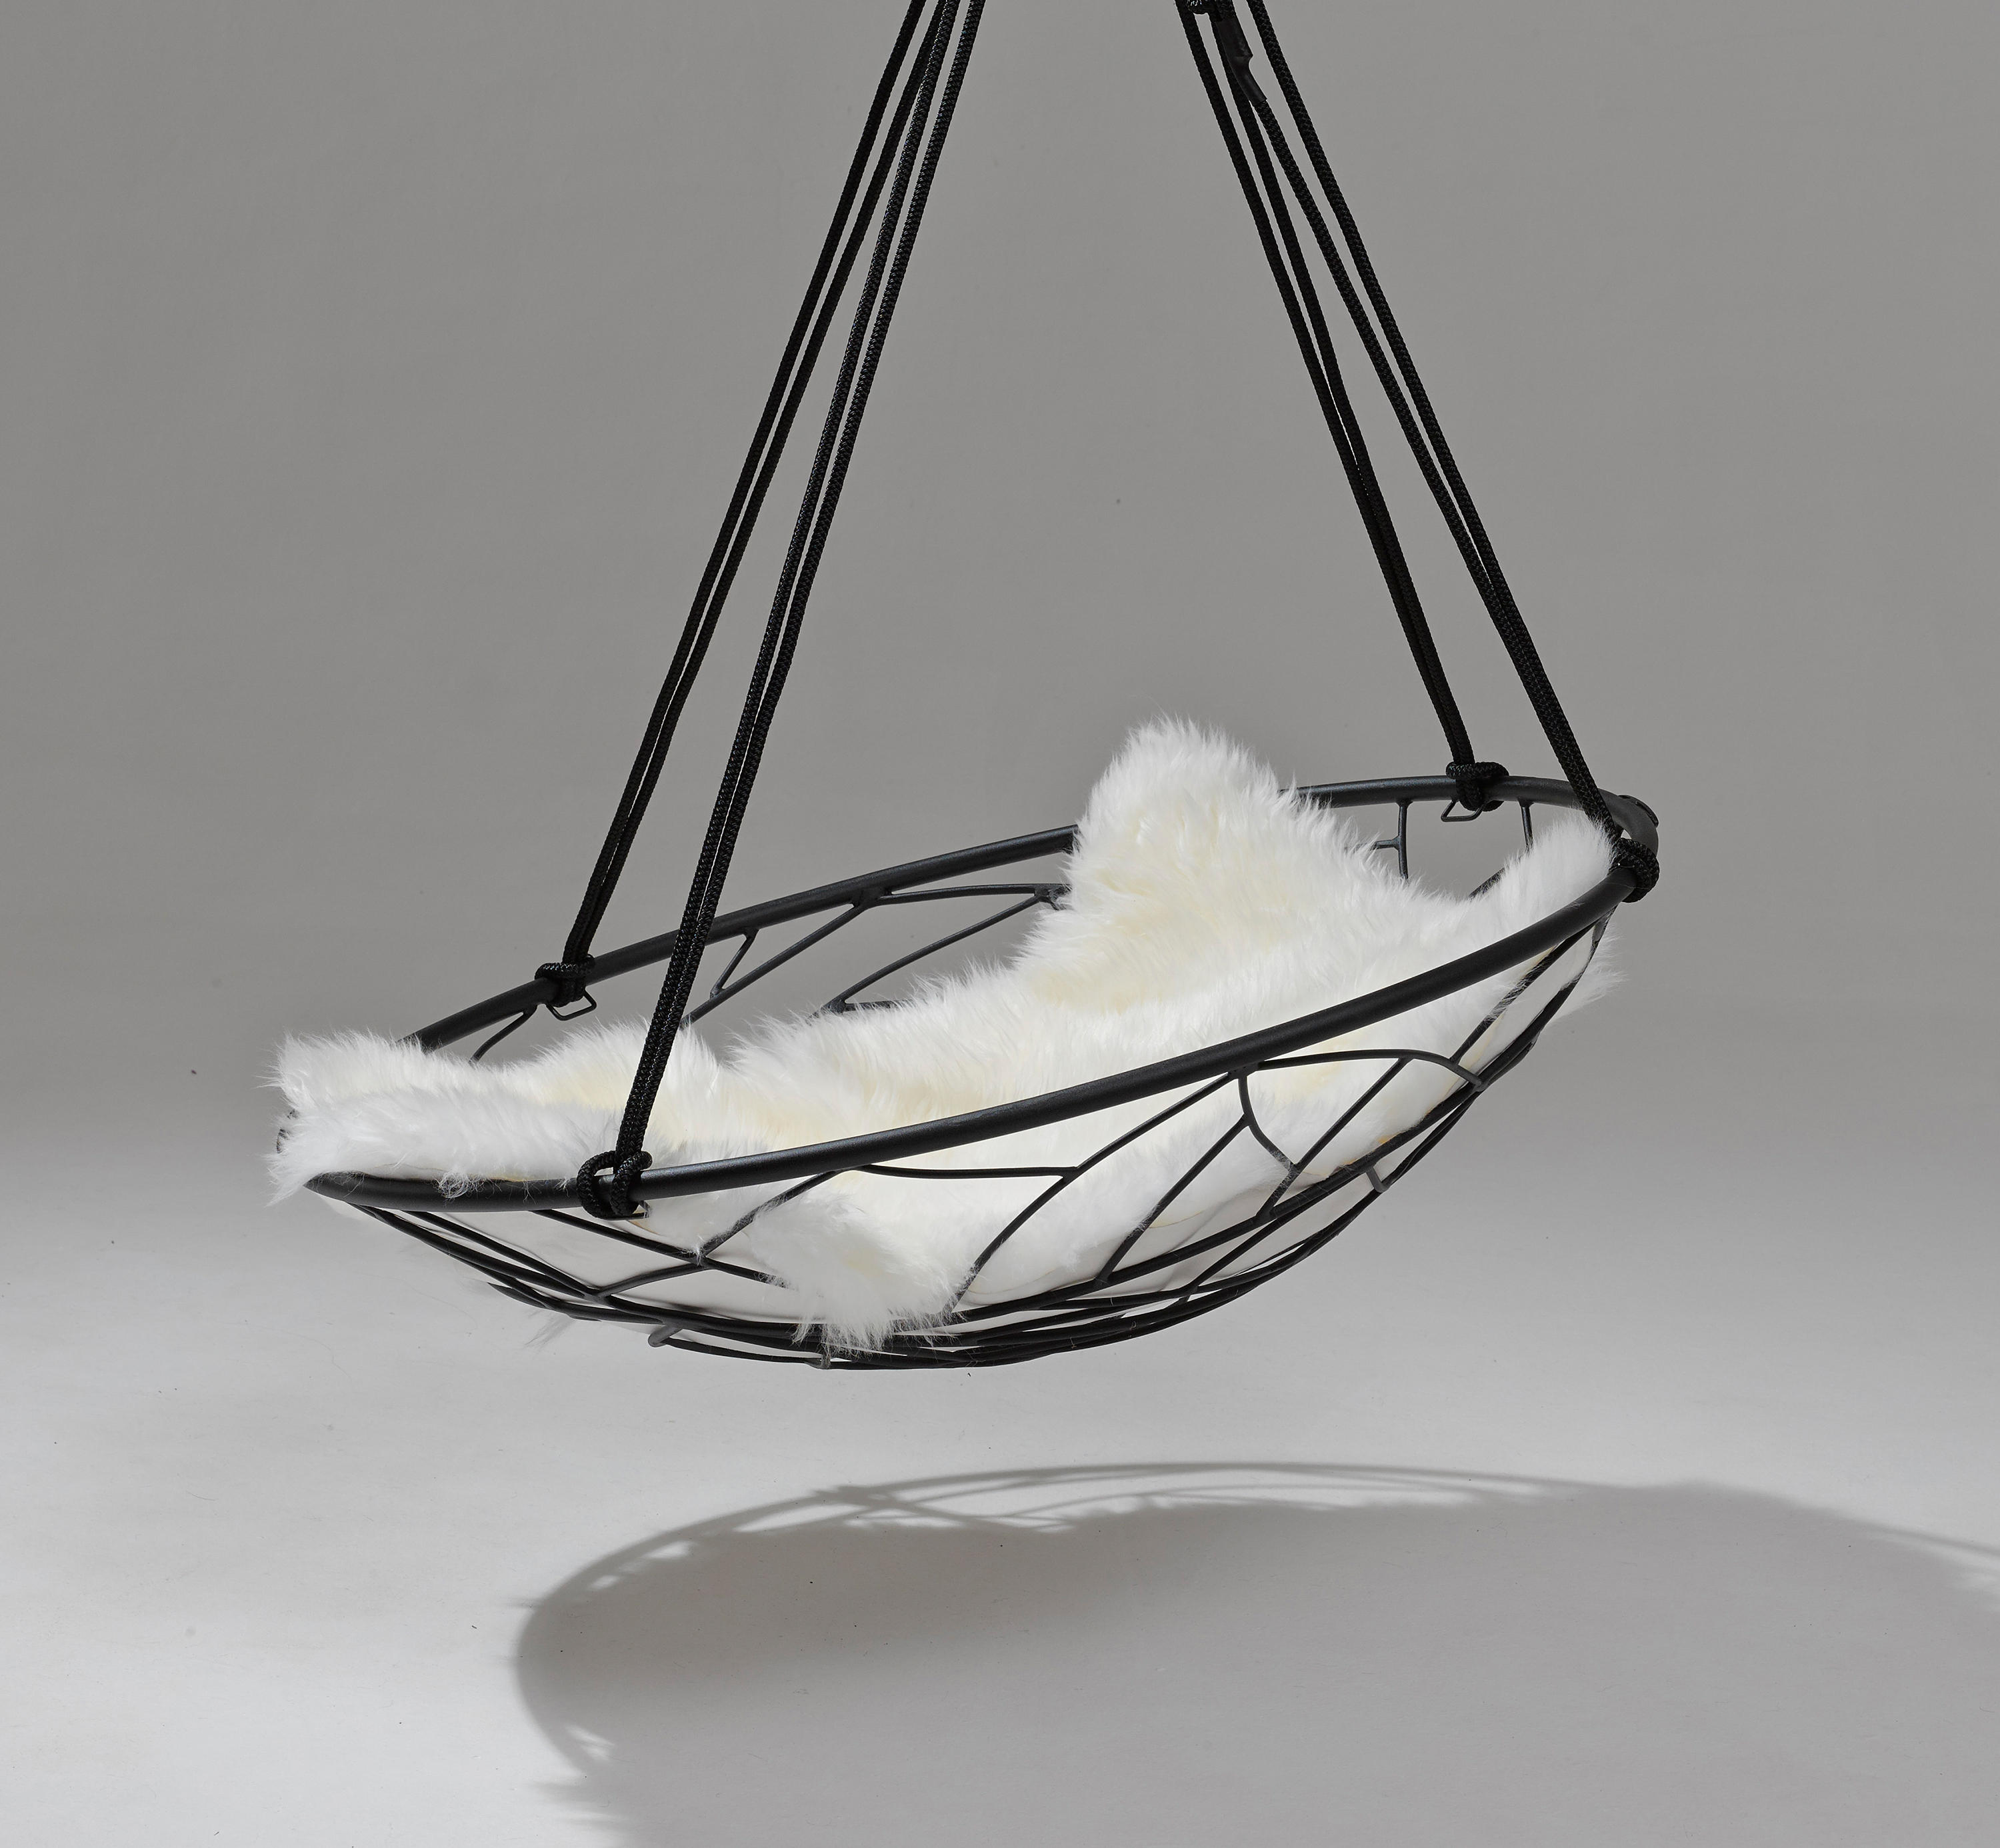 swing seat johannesburg wedding chair covers hire inverness sheepskin cushion cushions from studio stirling